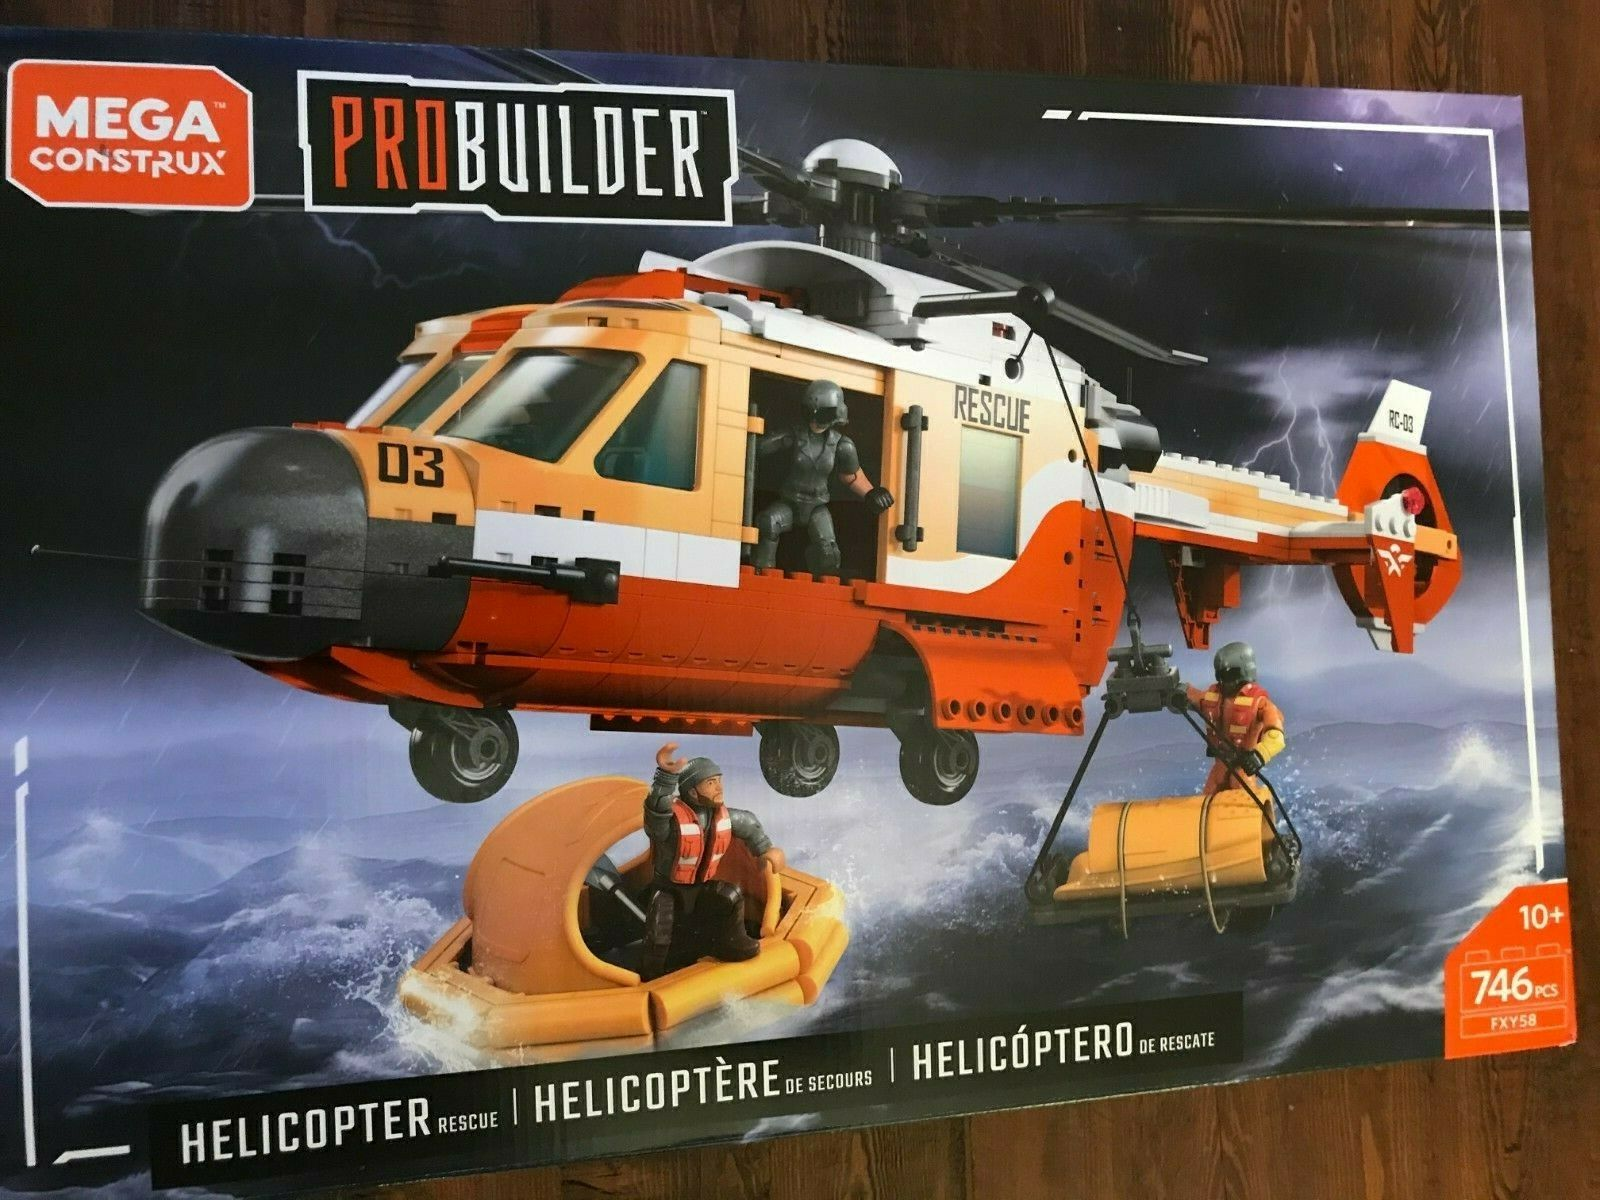 New in Box Mega Construx ProBuilder Helicopter Rescue Set Toy. UPC 887961703979.